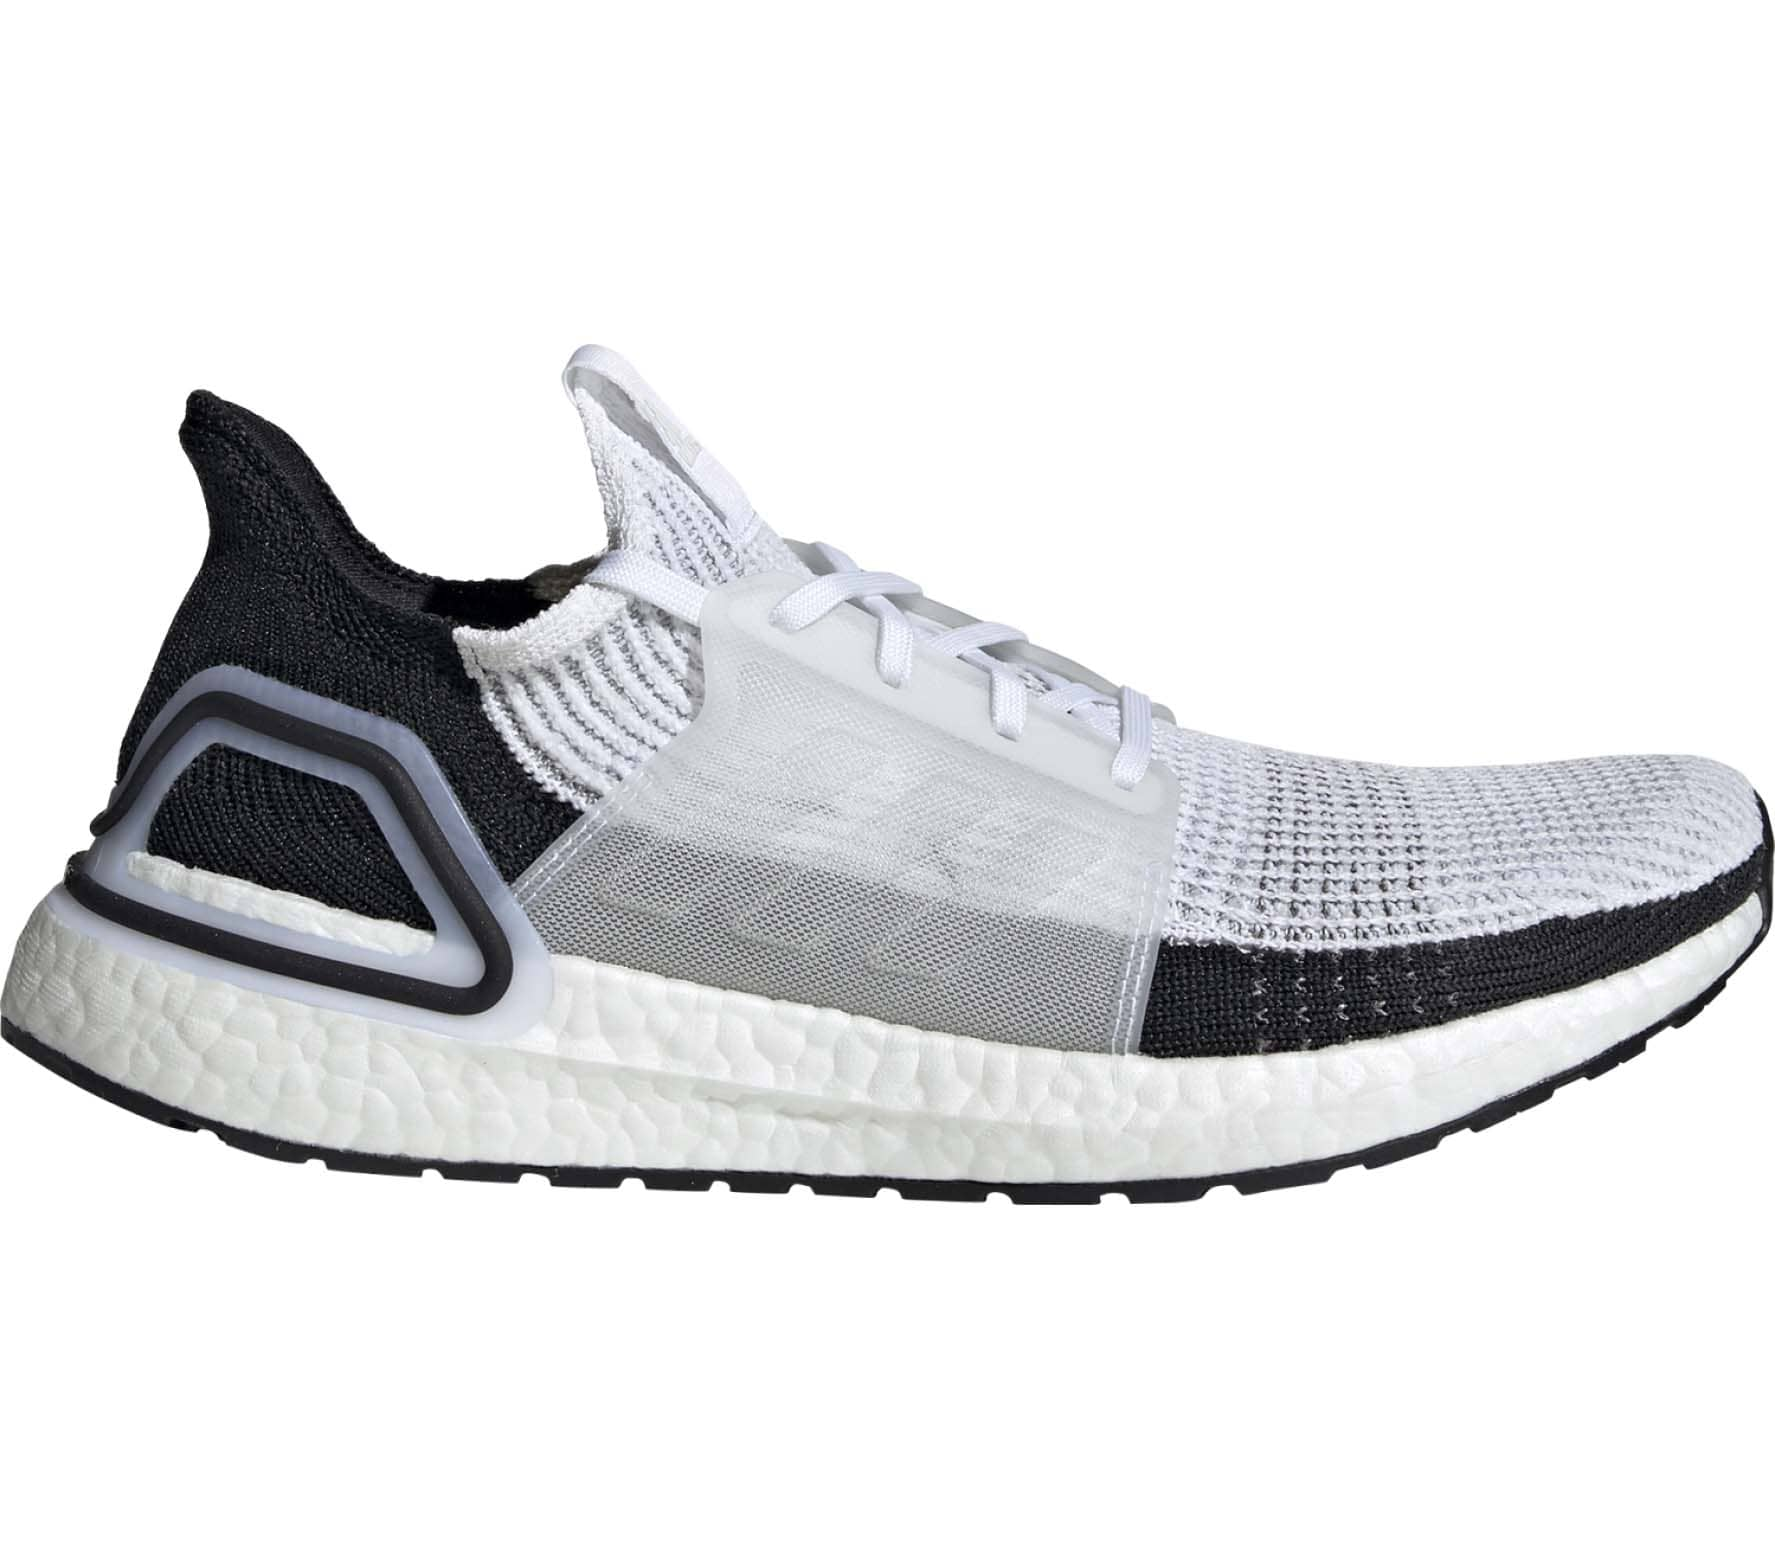 pretty nice 94ed1 1898e adidas - Ultraboost 19 chaussures de running pour hommes (blanc)